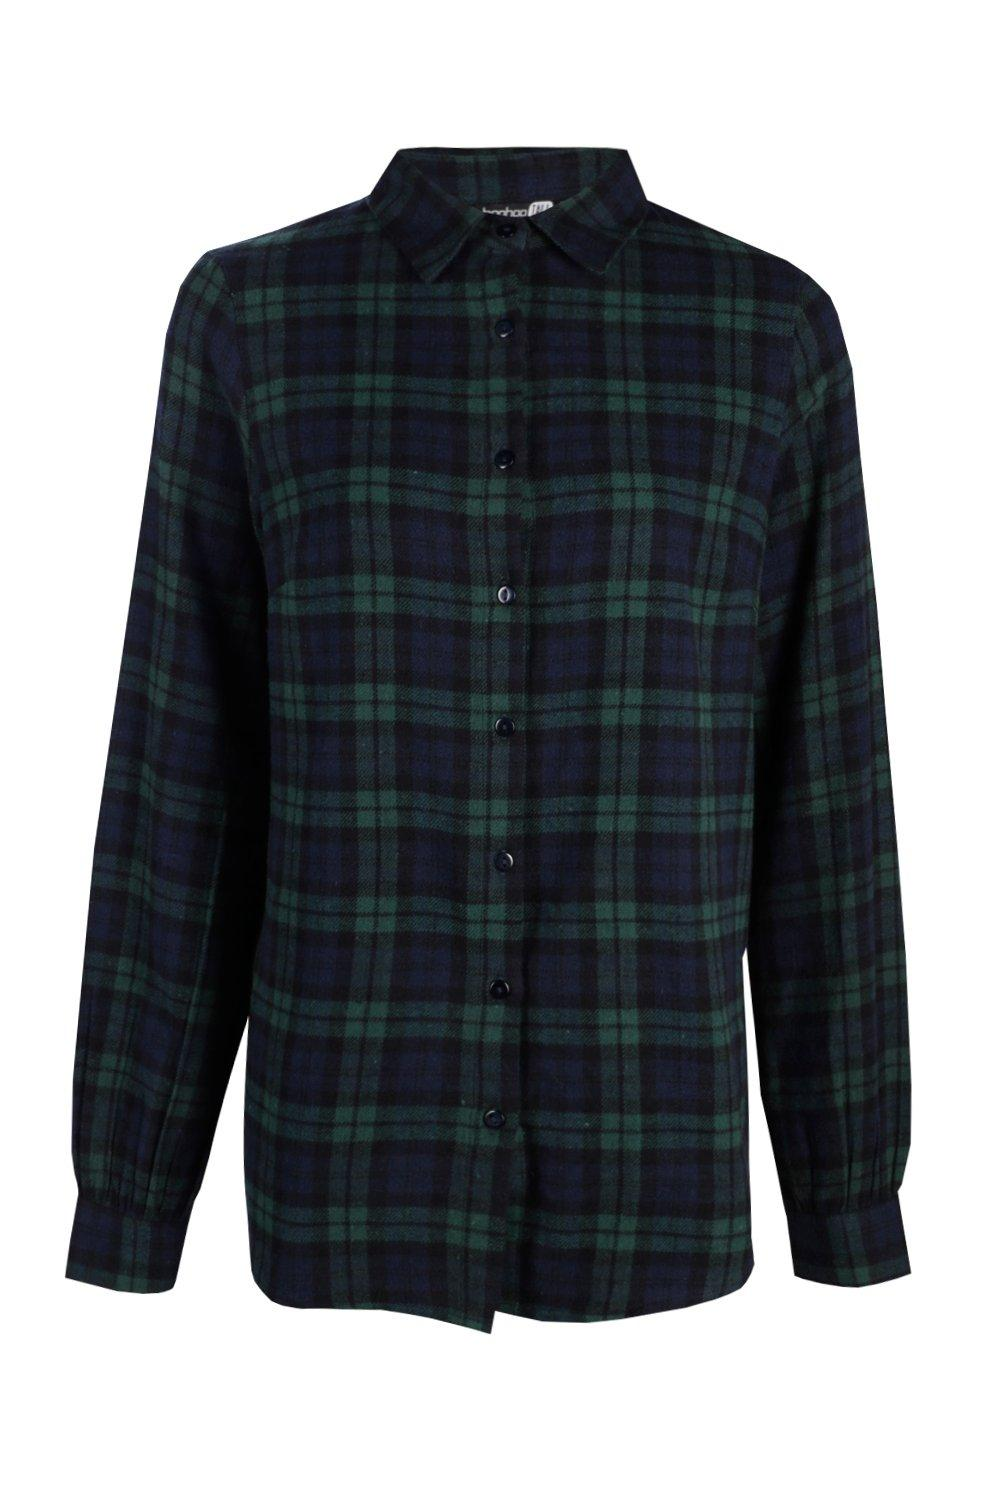 Shirt Checked Tall Tall Checked green cqByS7pZZO